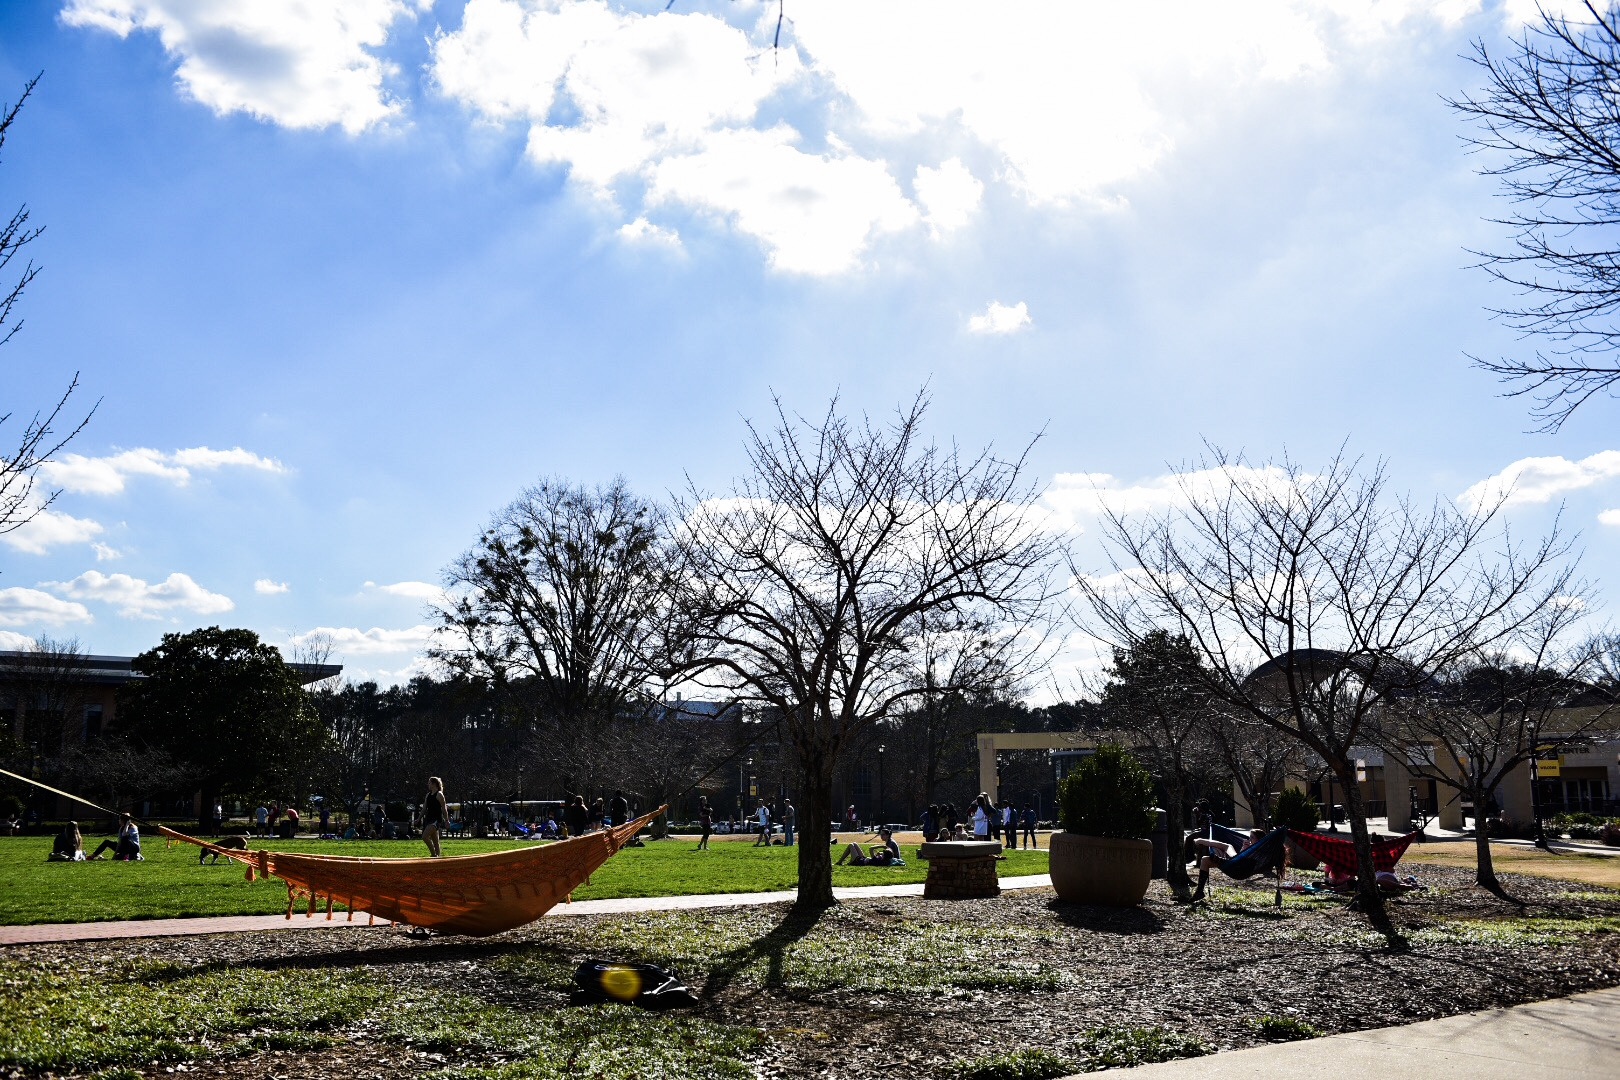 The Green voted 'Best Place to Hang' on Kennesaw campus